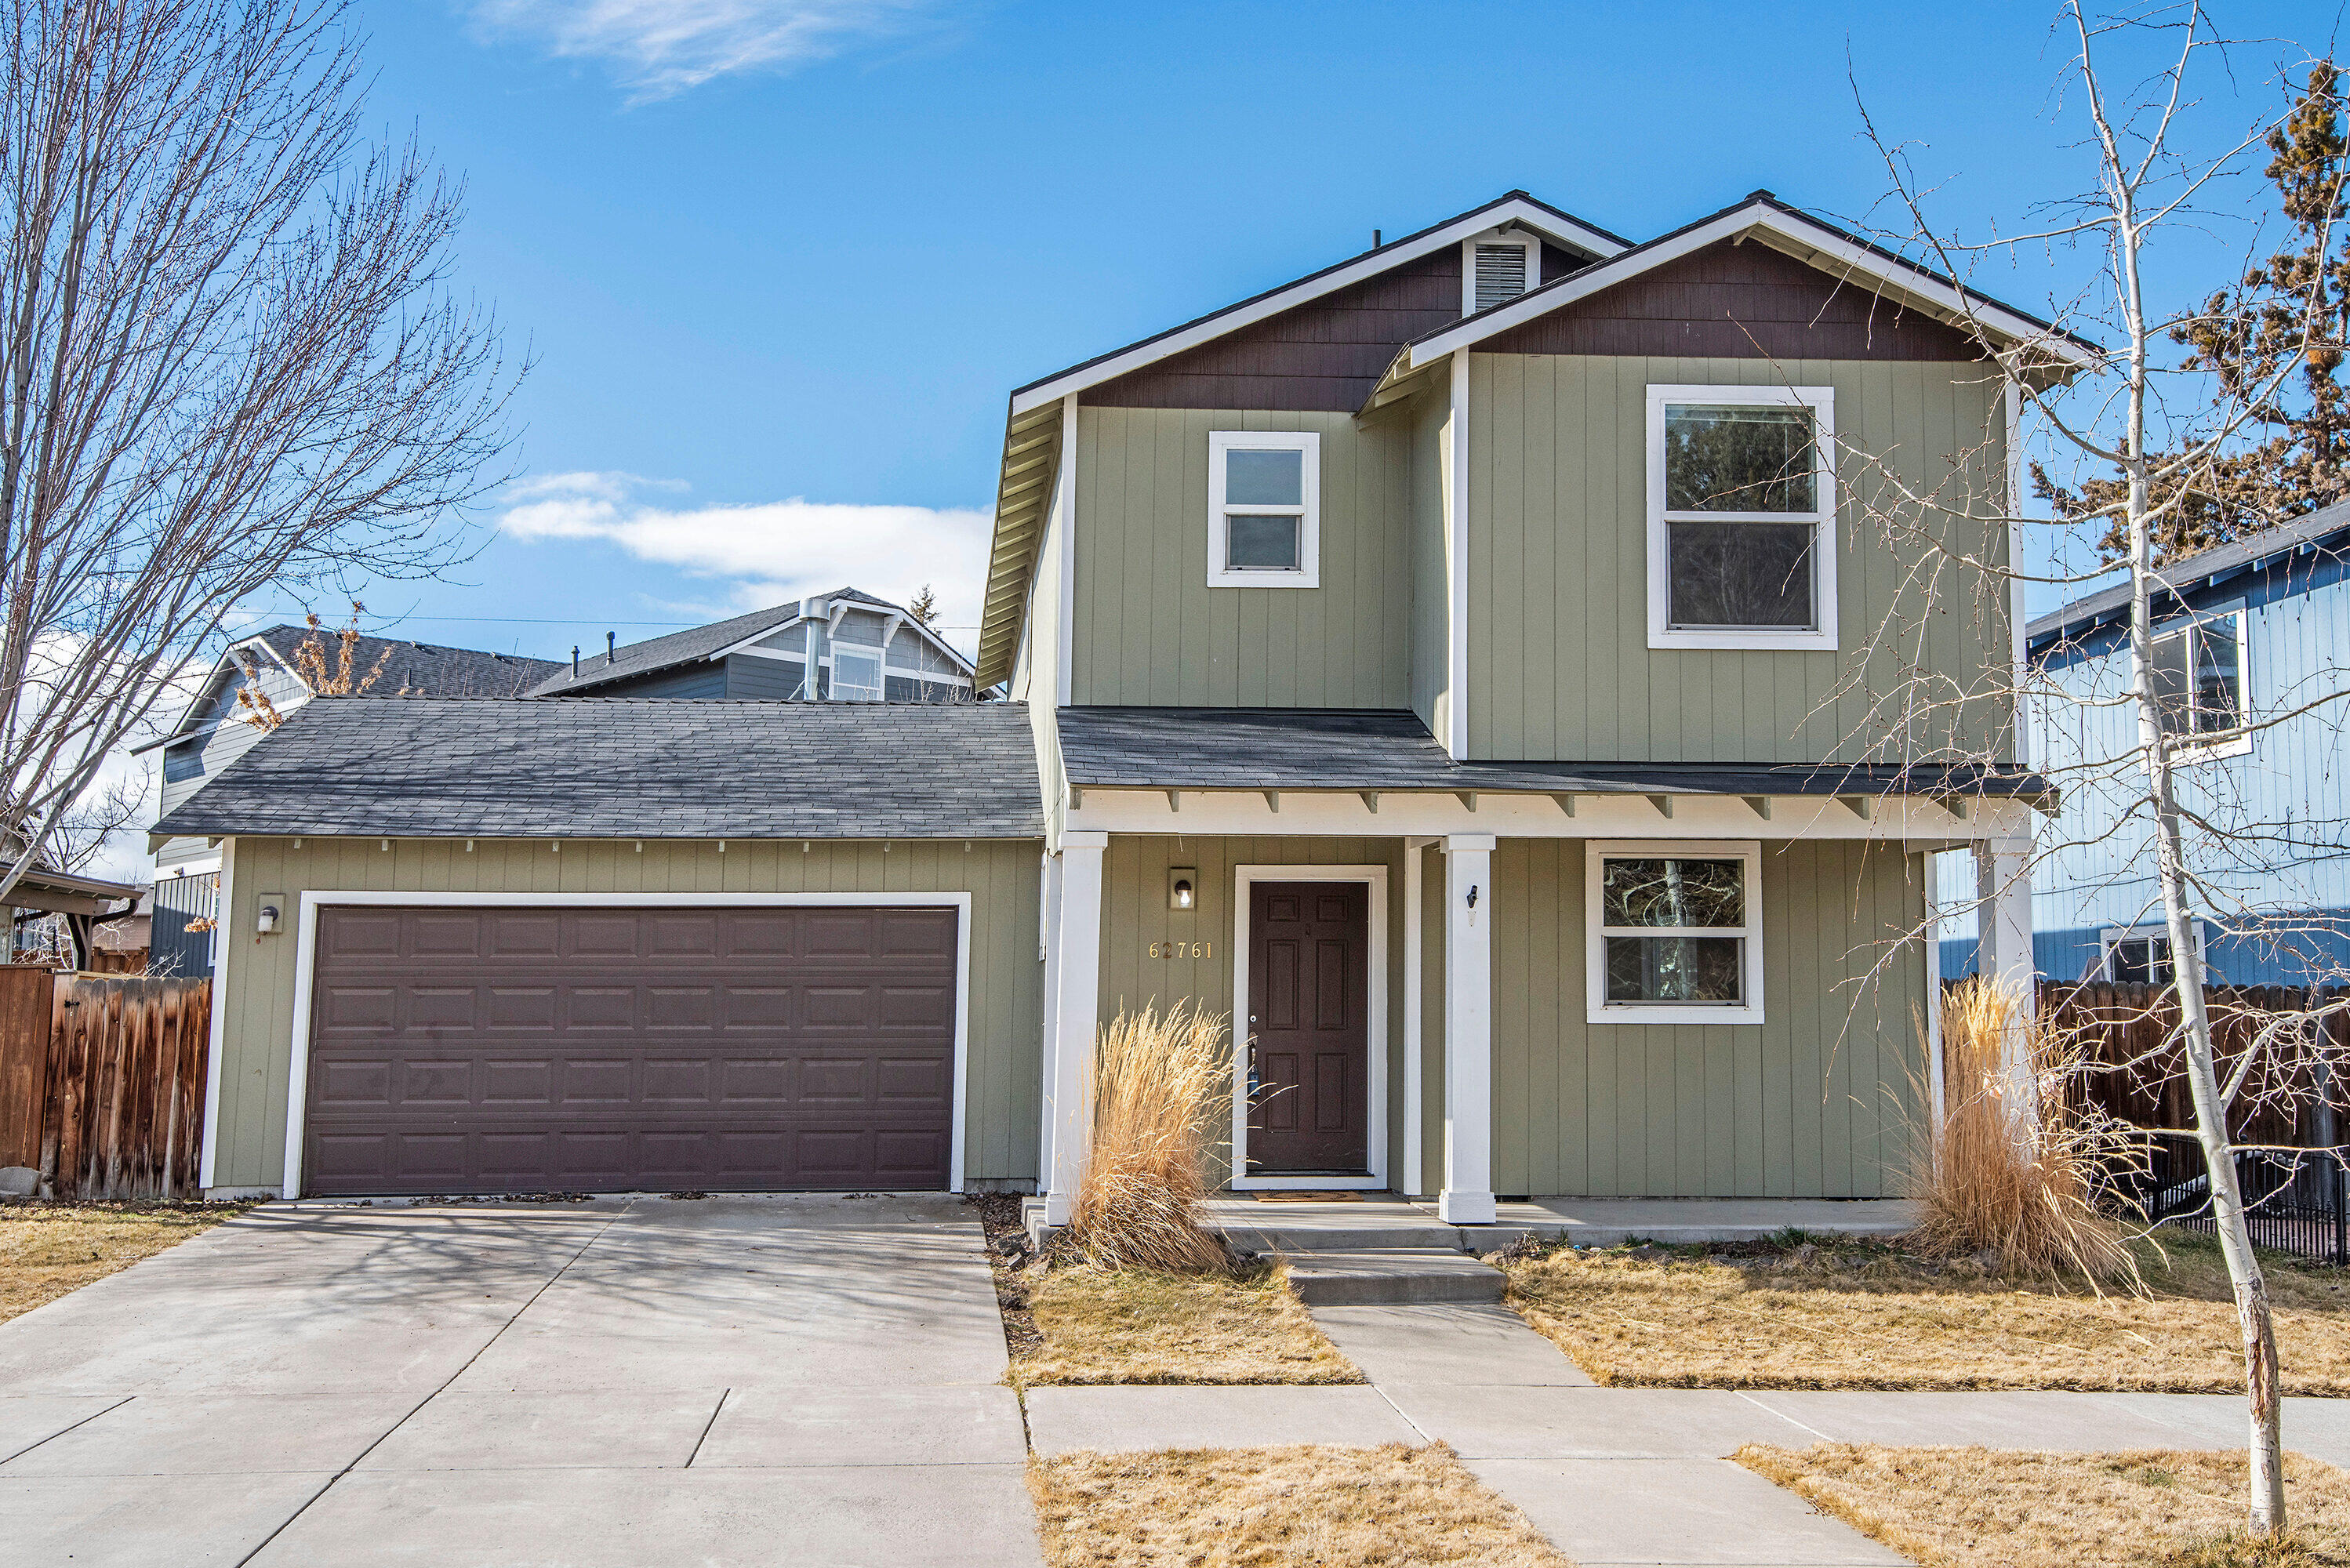 Cute craftsman in great NE neighborhood close to schools and shopping! New wood laminate floors, open floor plan, gas fireplace, all bedrooms upstairs, gas forced air heat and sunny landscaped yard with gardening space.